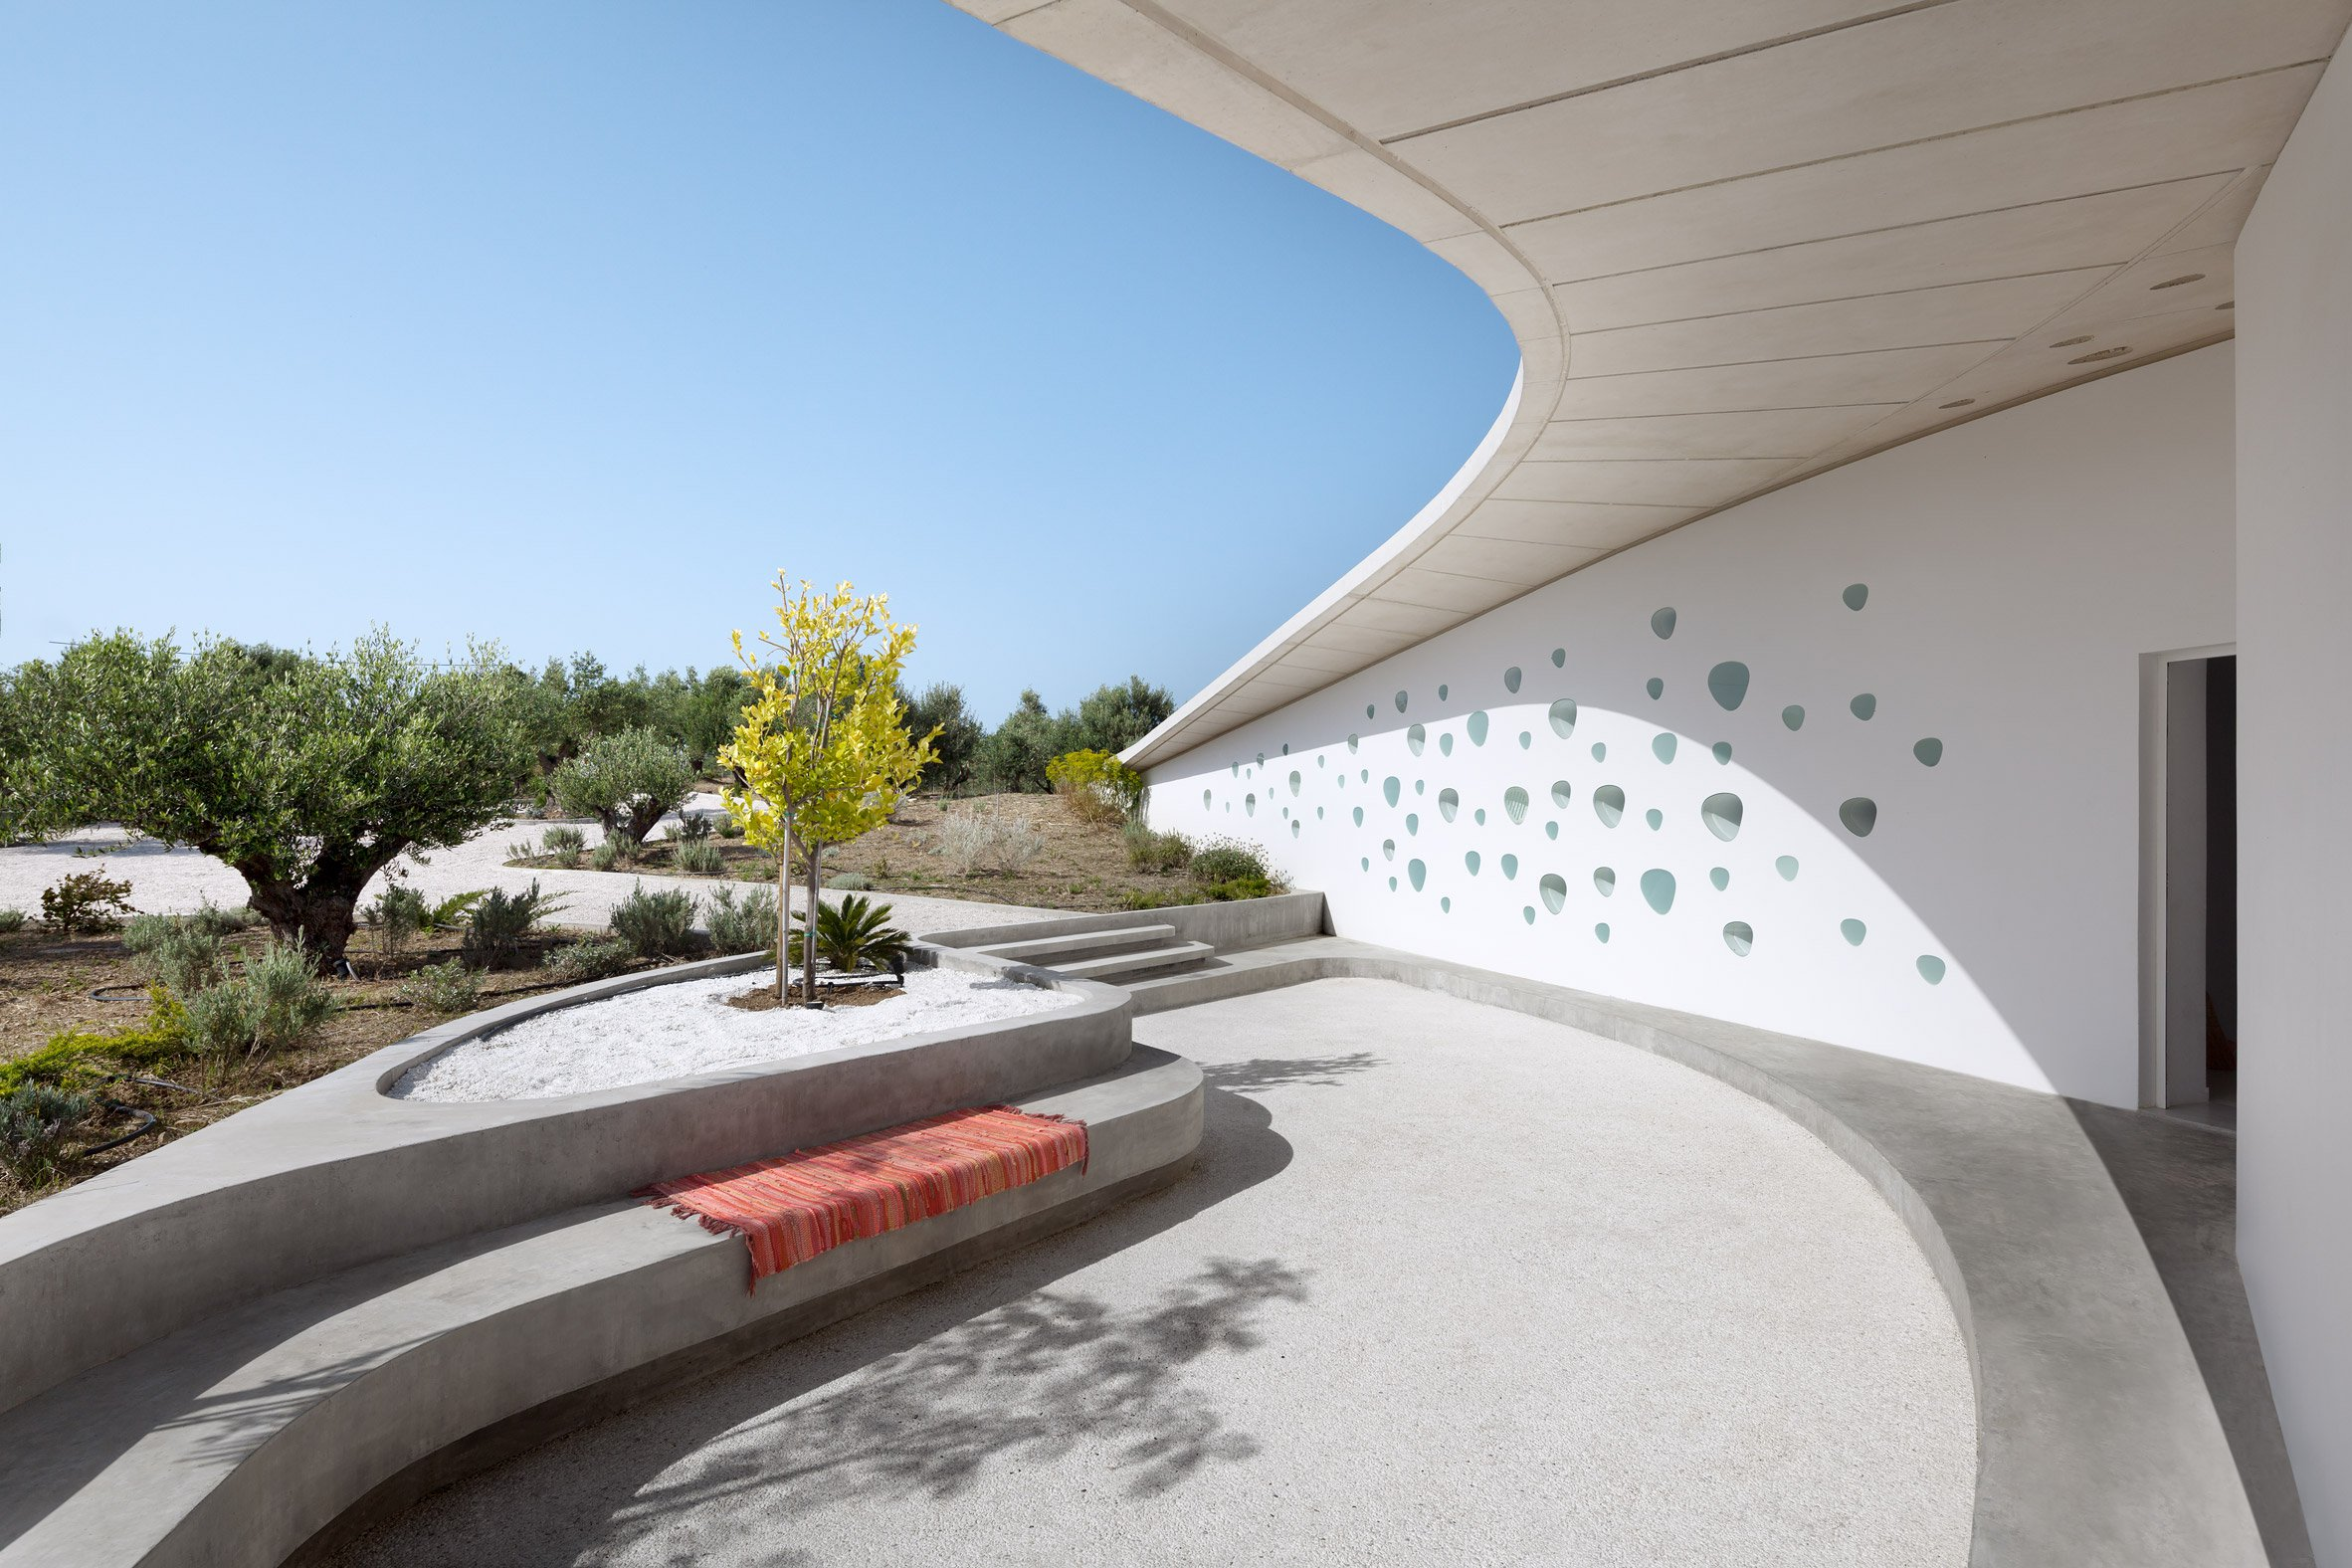 There are three different courtyards that allow enjoying the views and sunlight at different times of the day, all of them are decorated in minimalist style